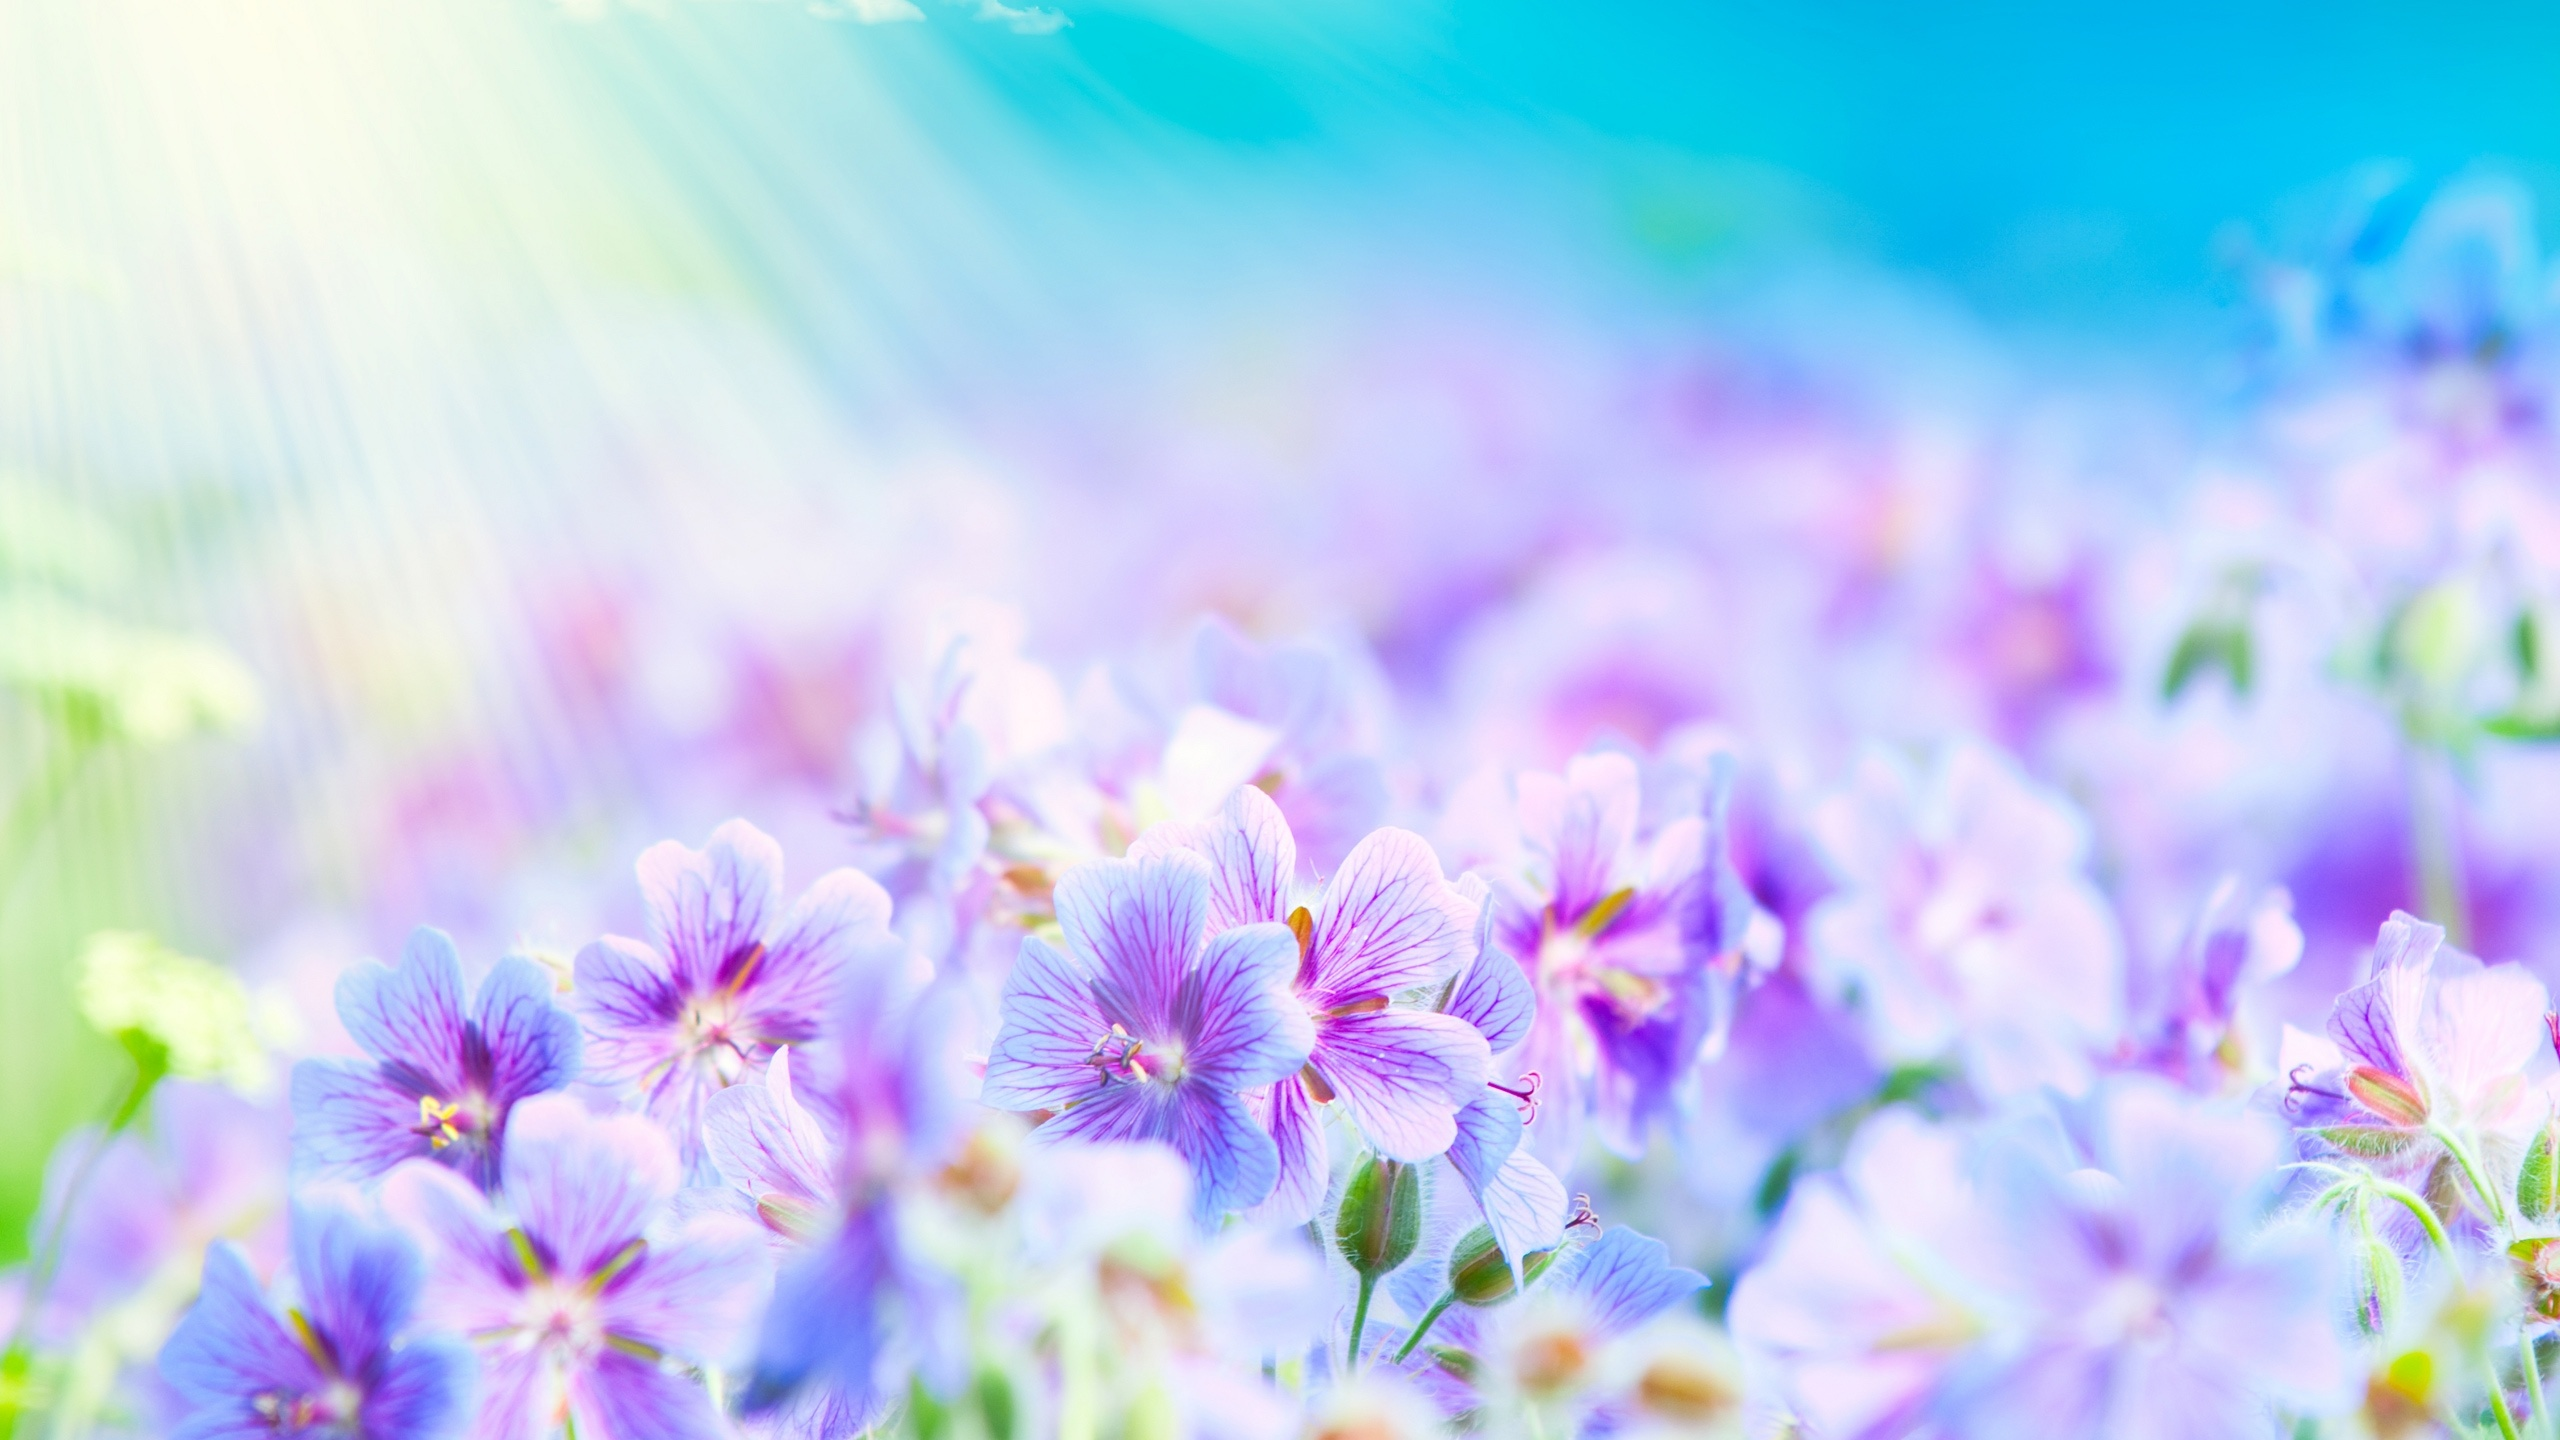 lavender flowers wallpapers 2560x1440 - photo #33